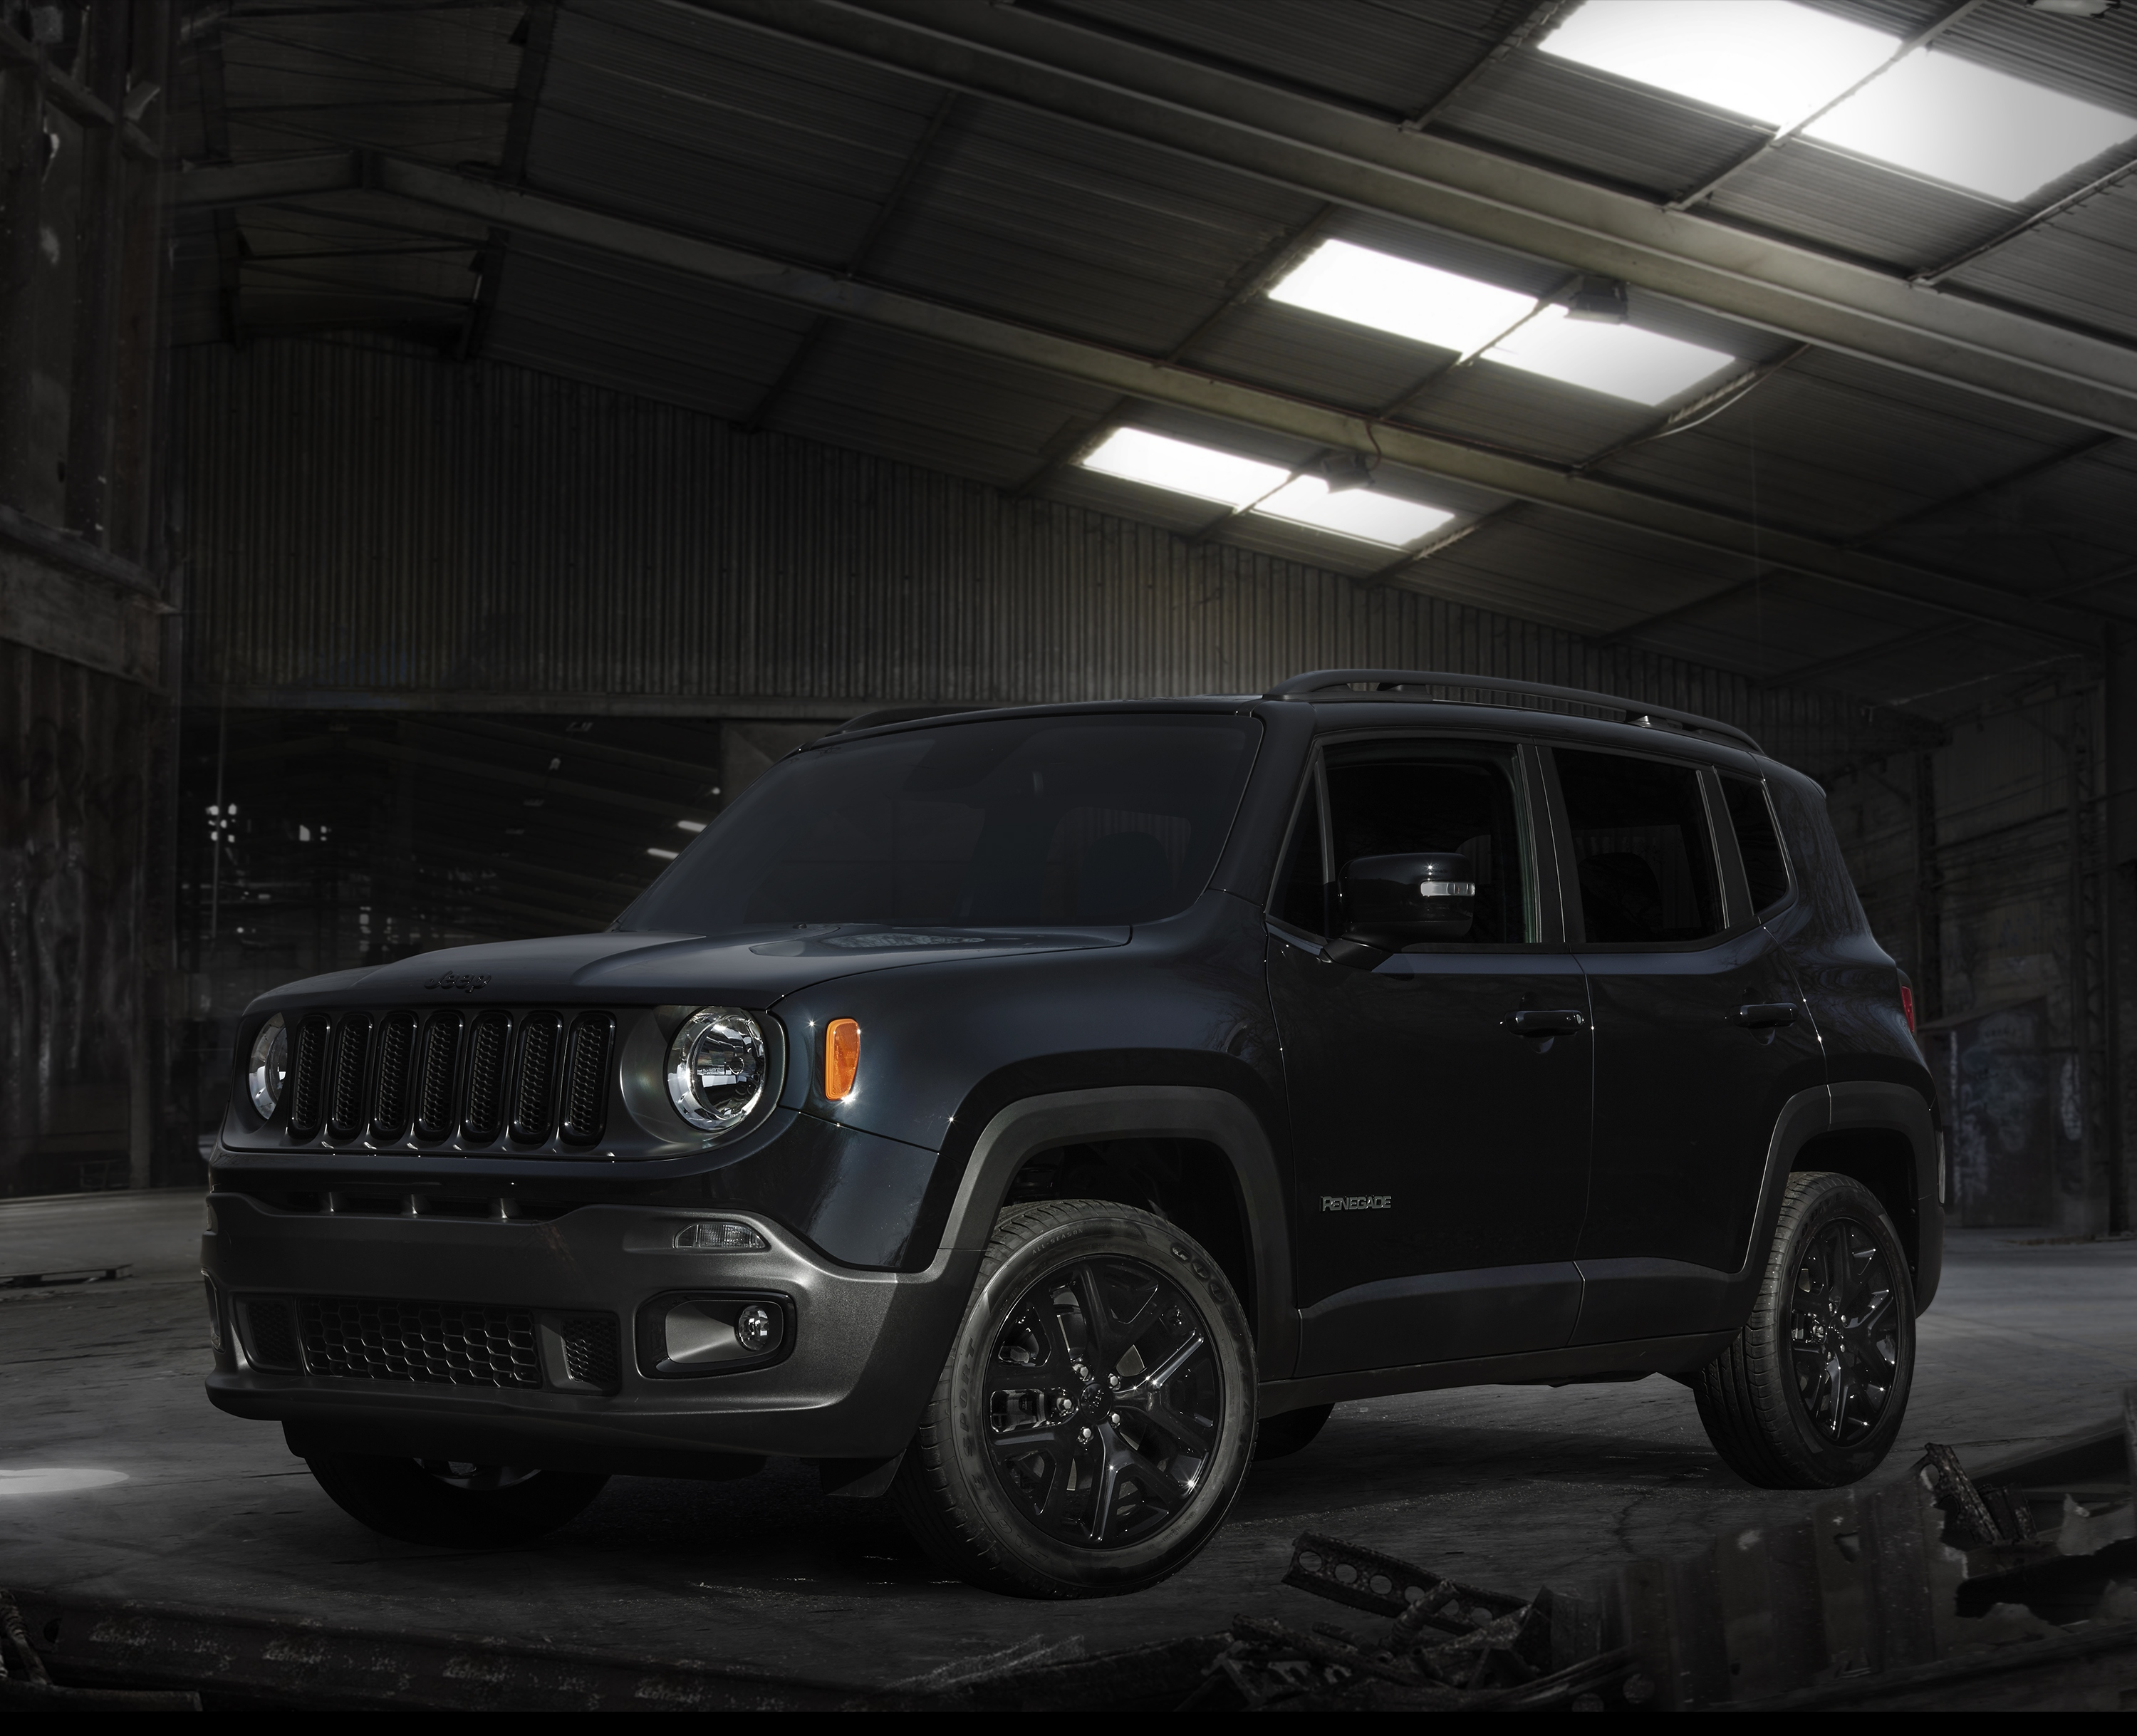 jeep renegade dawn of justice l me d un superh ros albi le g ant. Black Bedroom Furniture Sets. Home Design Ideas